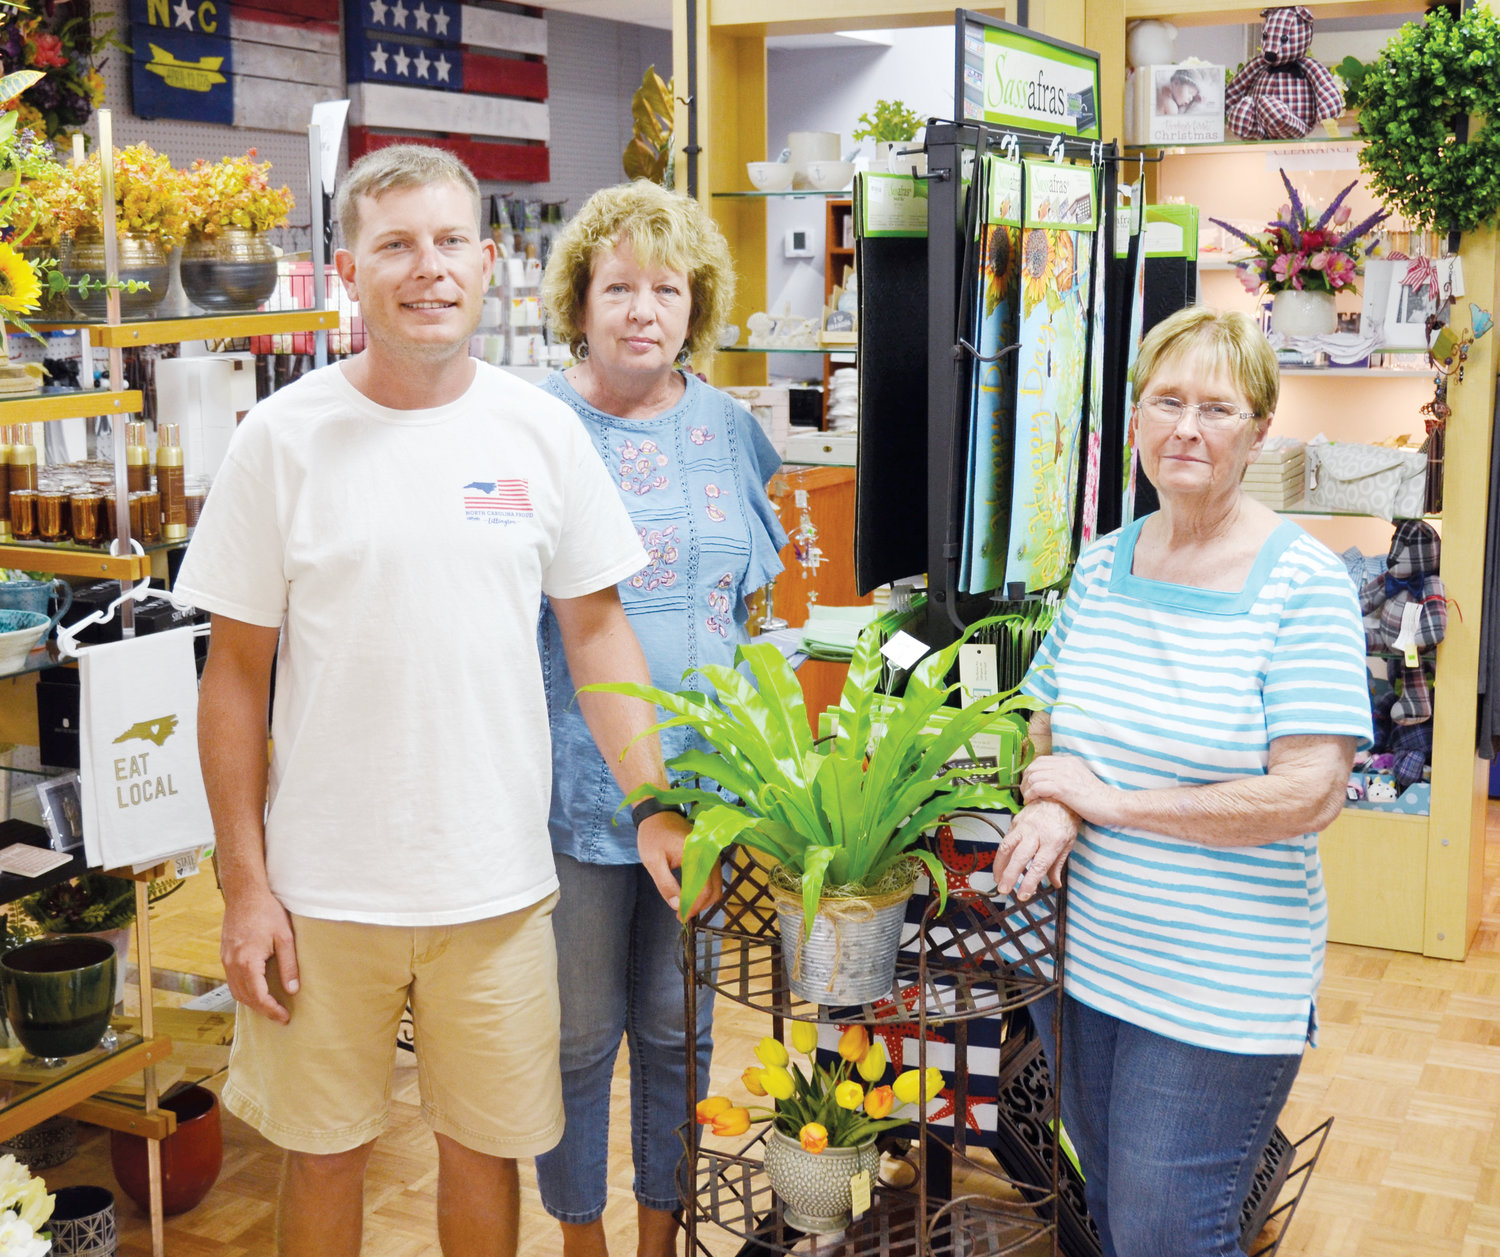 Matt Brown has opened The Flower Pot at 29 W. Front St. in Lillington. Included in the staff of the floral and gift shop are his mother Beverly (center) and Ann Gregory who also does designing along with Brown.